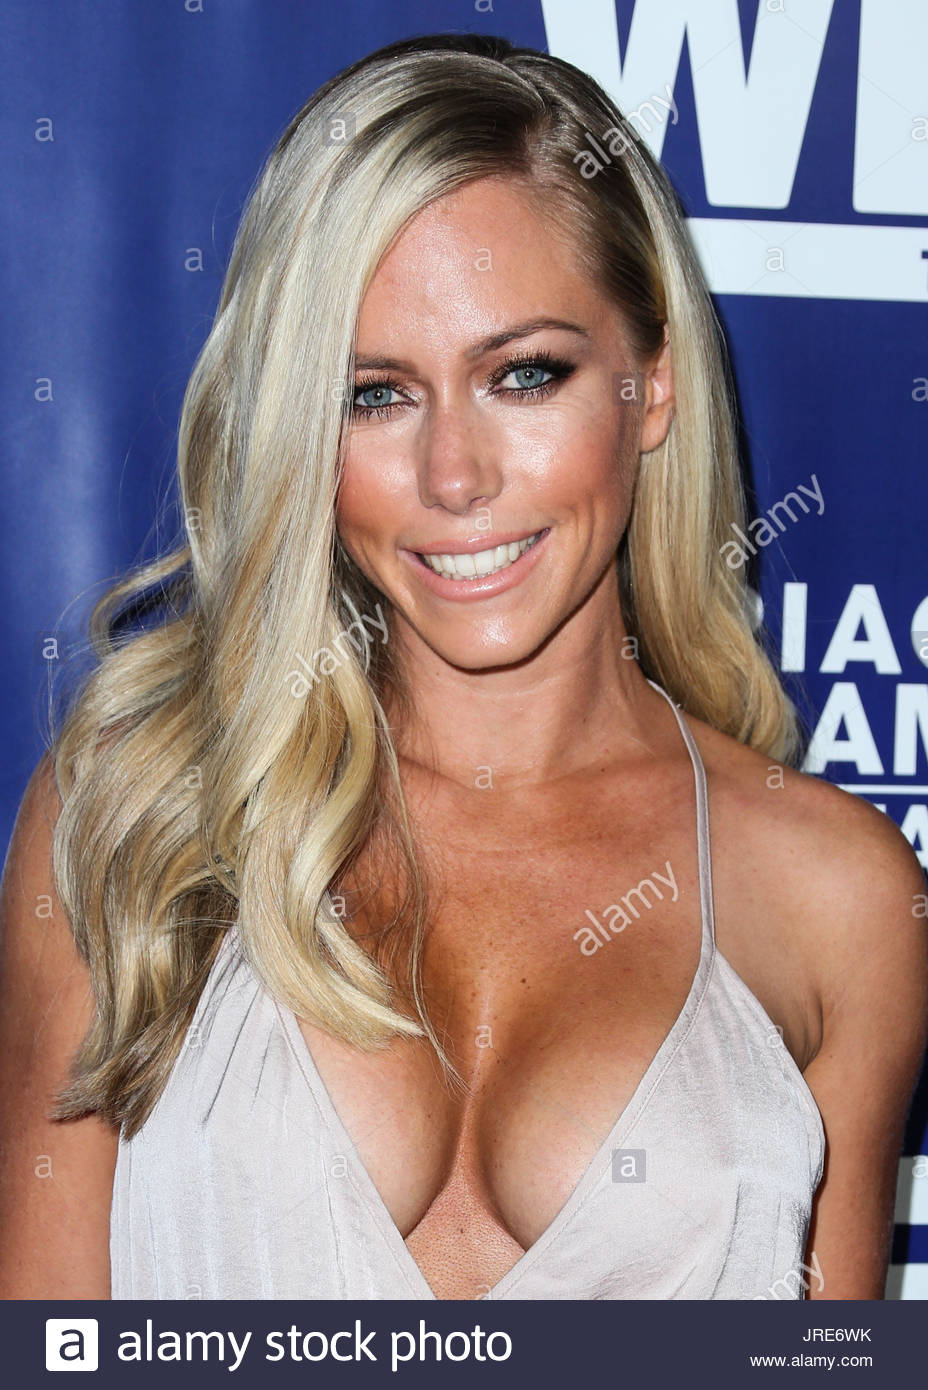 pictures Kendra Wilkinson United States